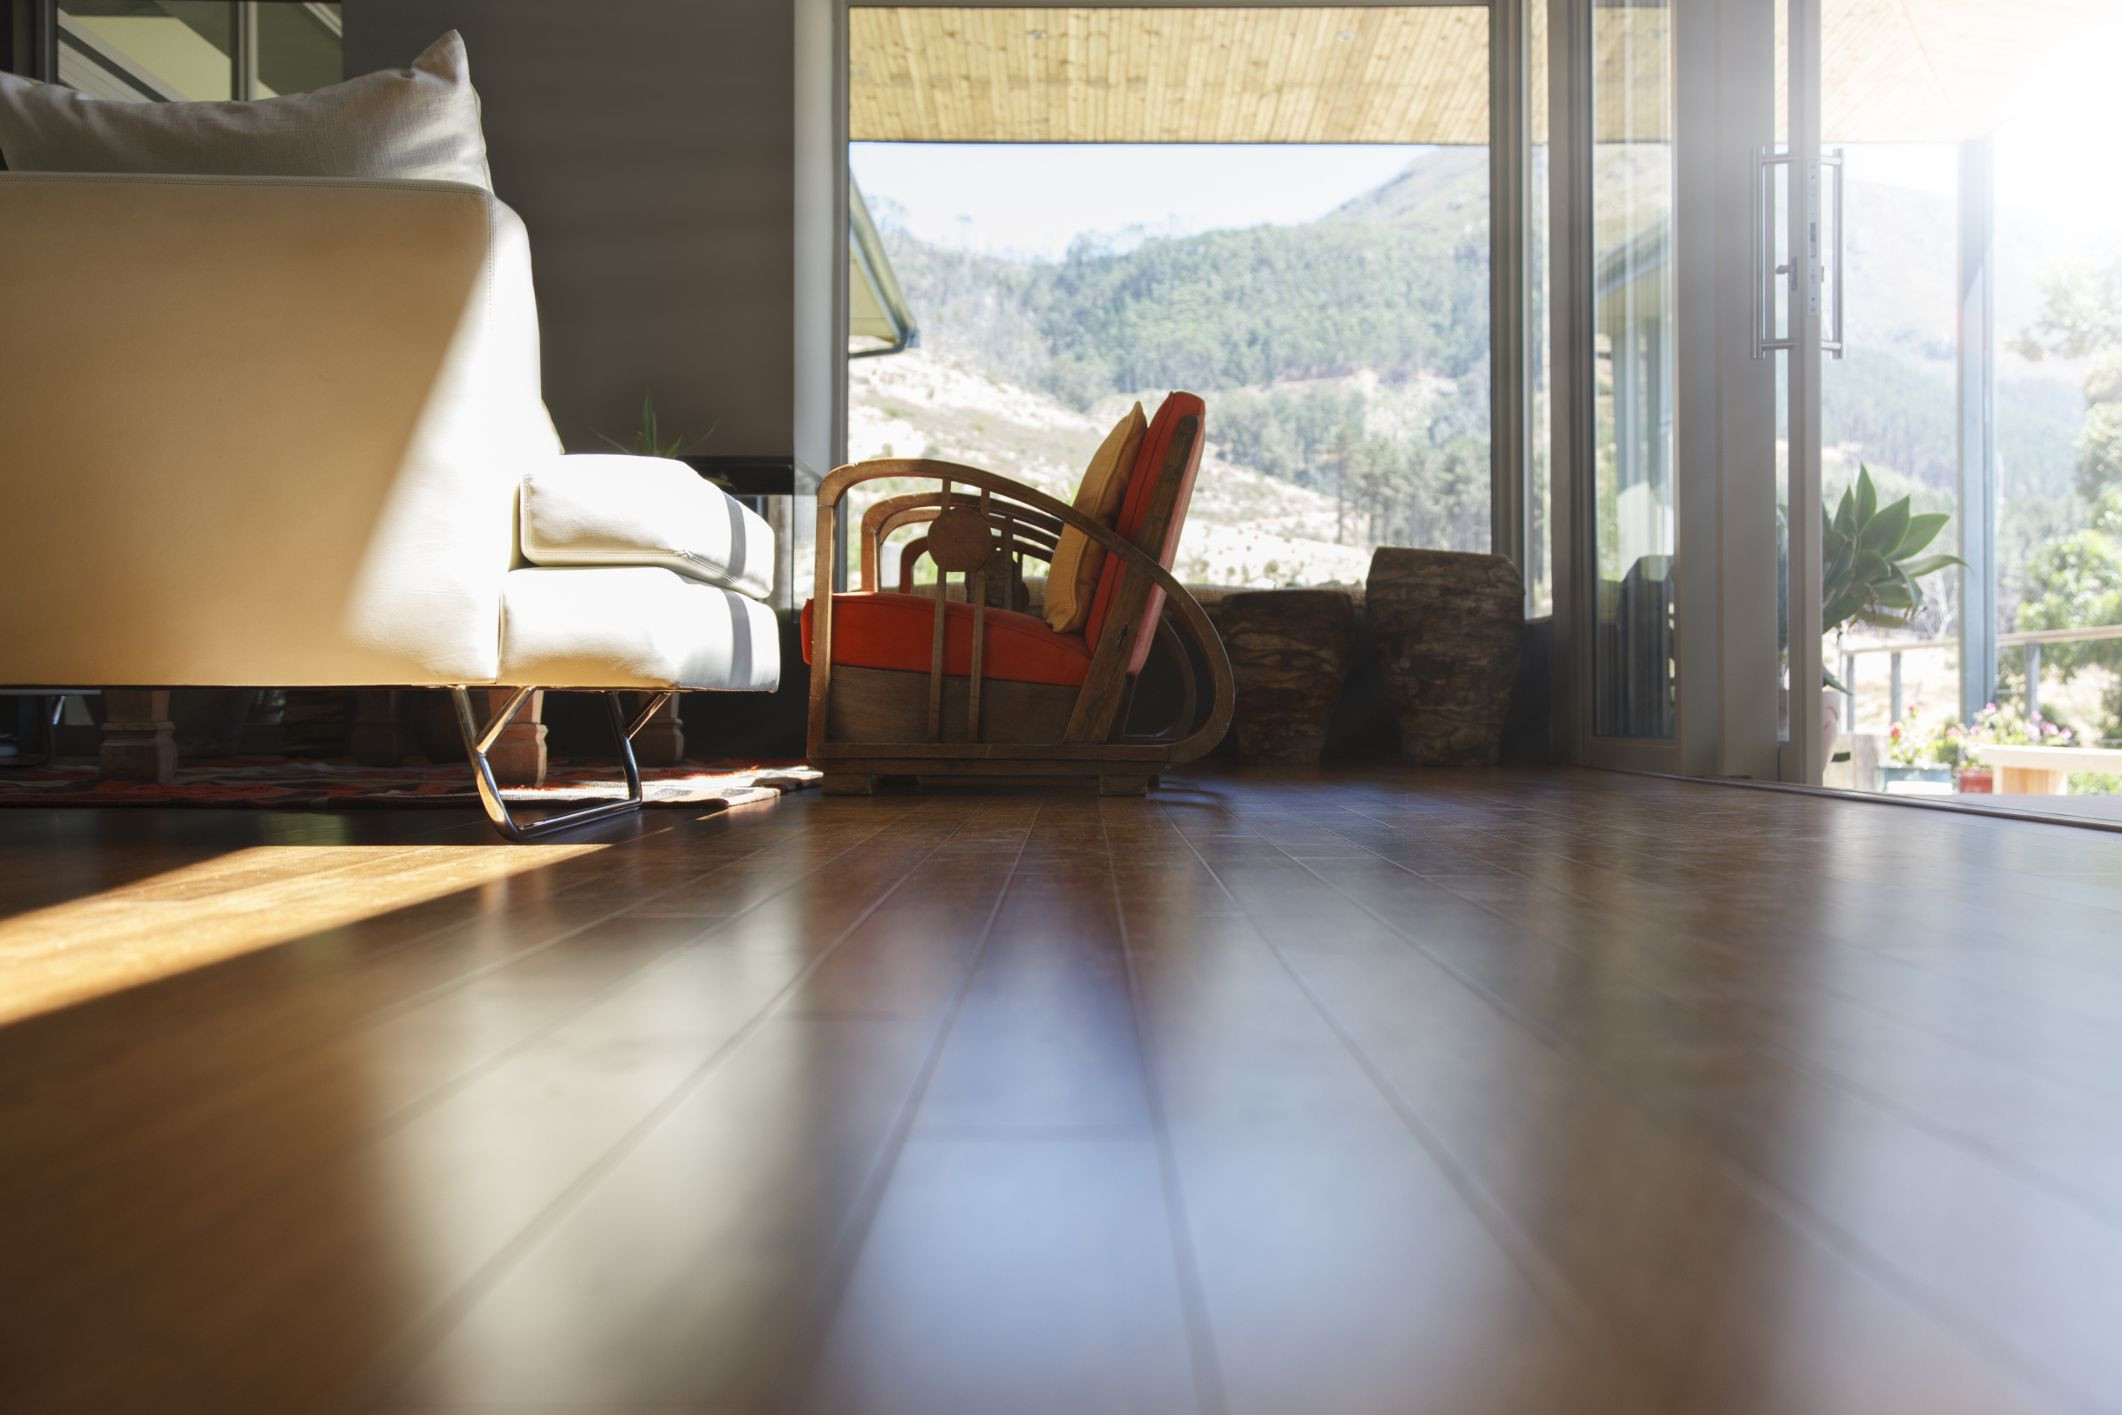 hardwood floor cleaning service of pros and cons of bellawood flooring from lumber liquidators in exotic hardwood flooring 525439899 56a49d3a3df78cf77283453d